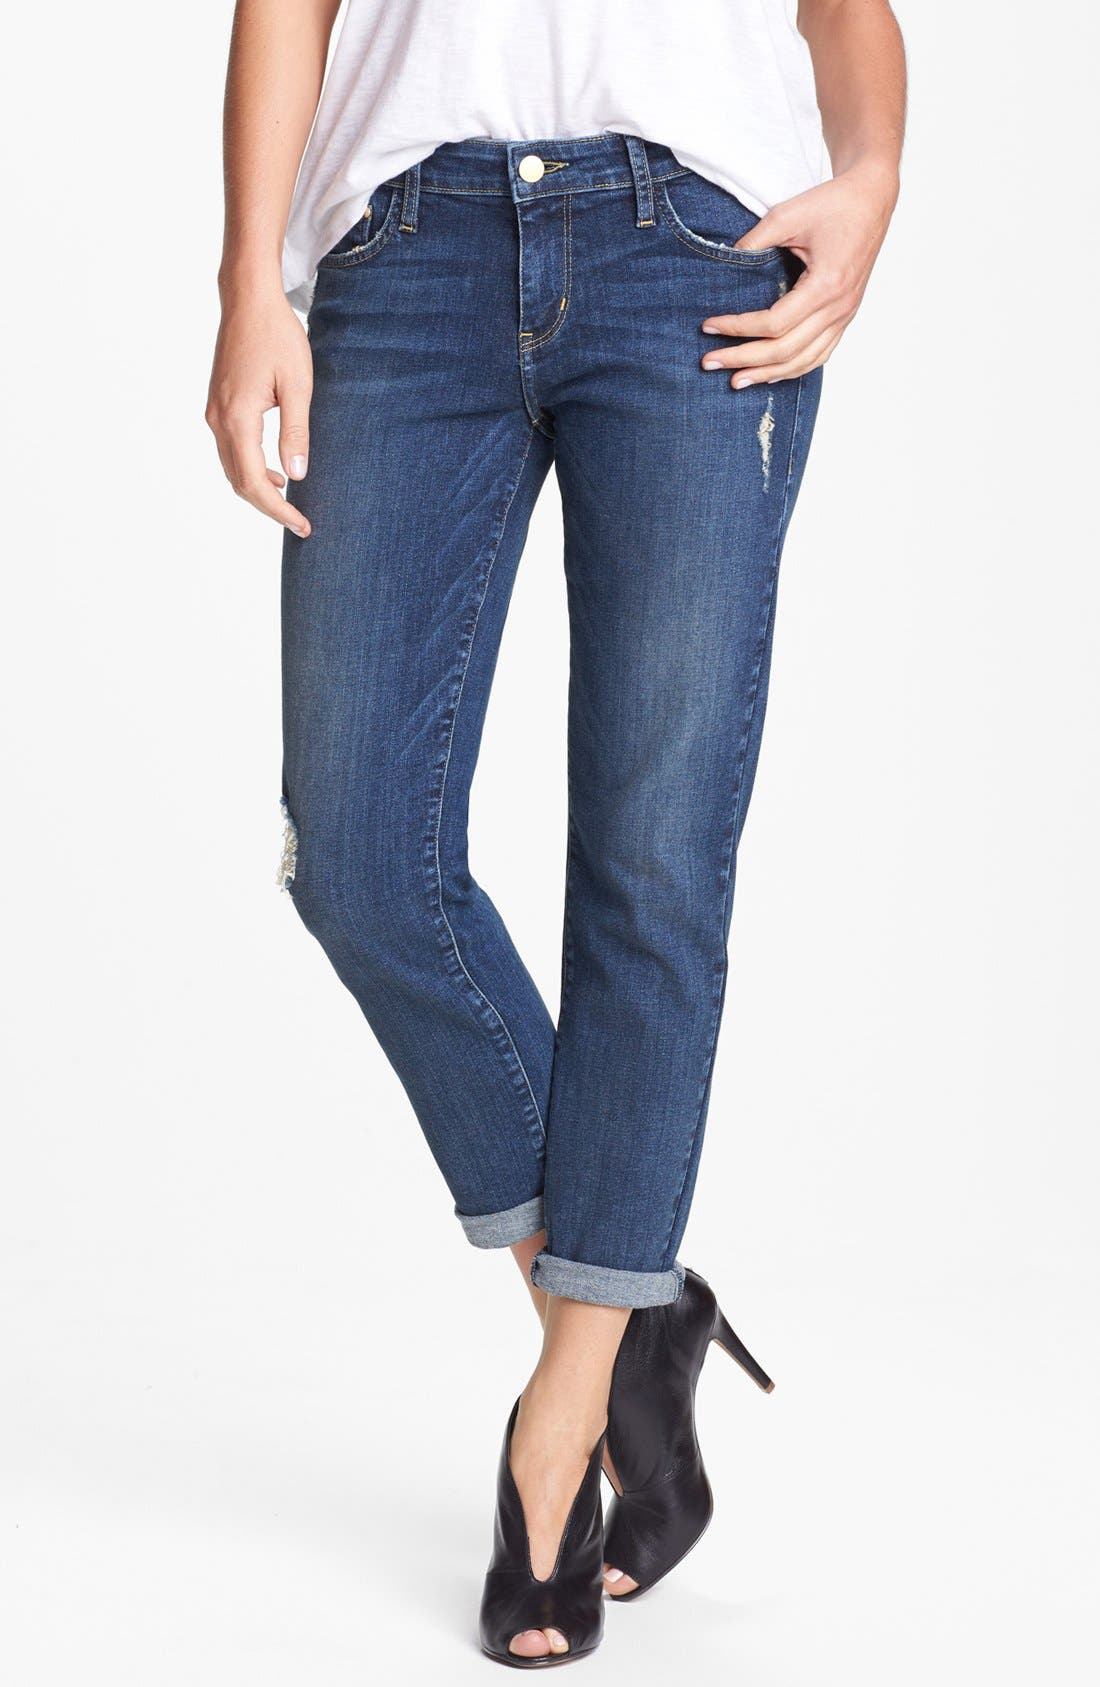 Alternate Image 1 Selected - !iT Collective 'Hepburn' Stretch Boyfriend Jeans (Mac Coy)